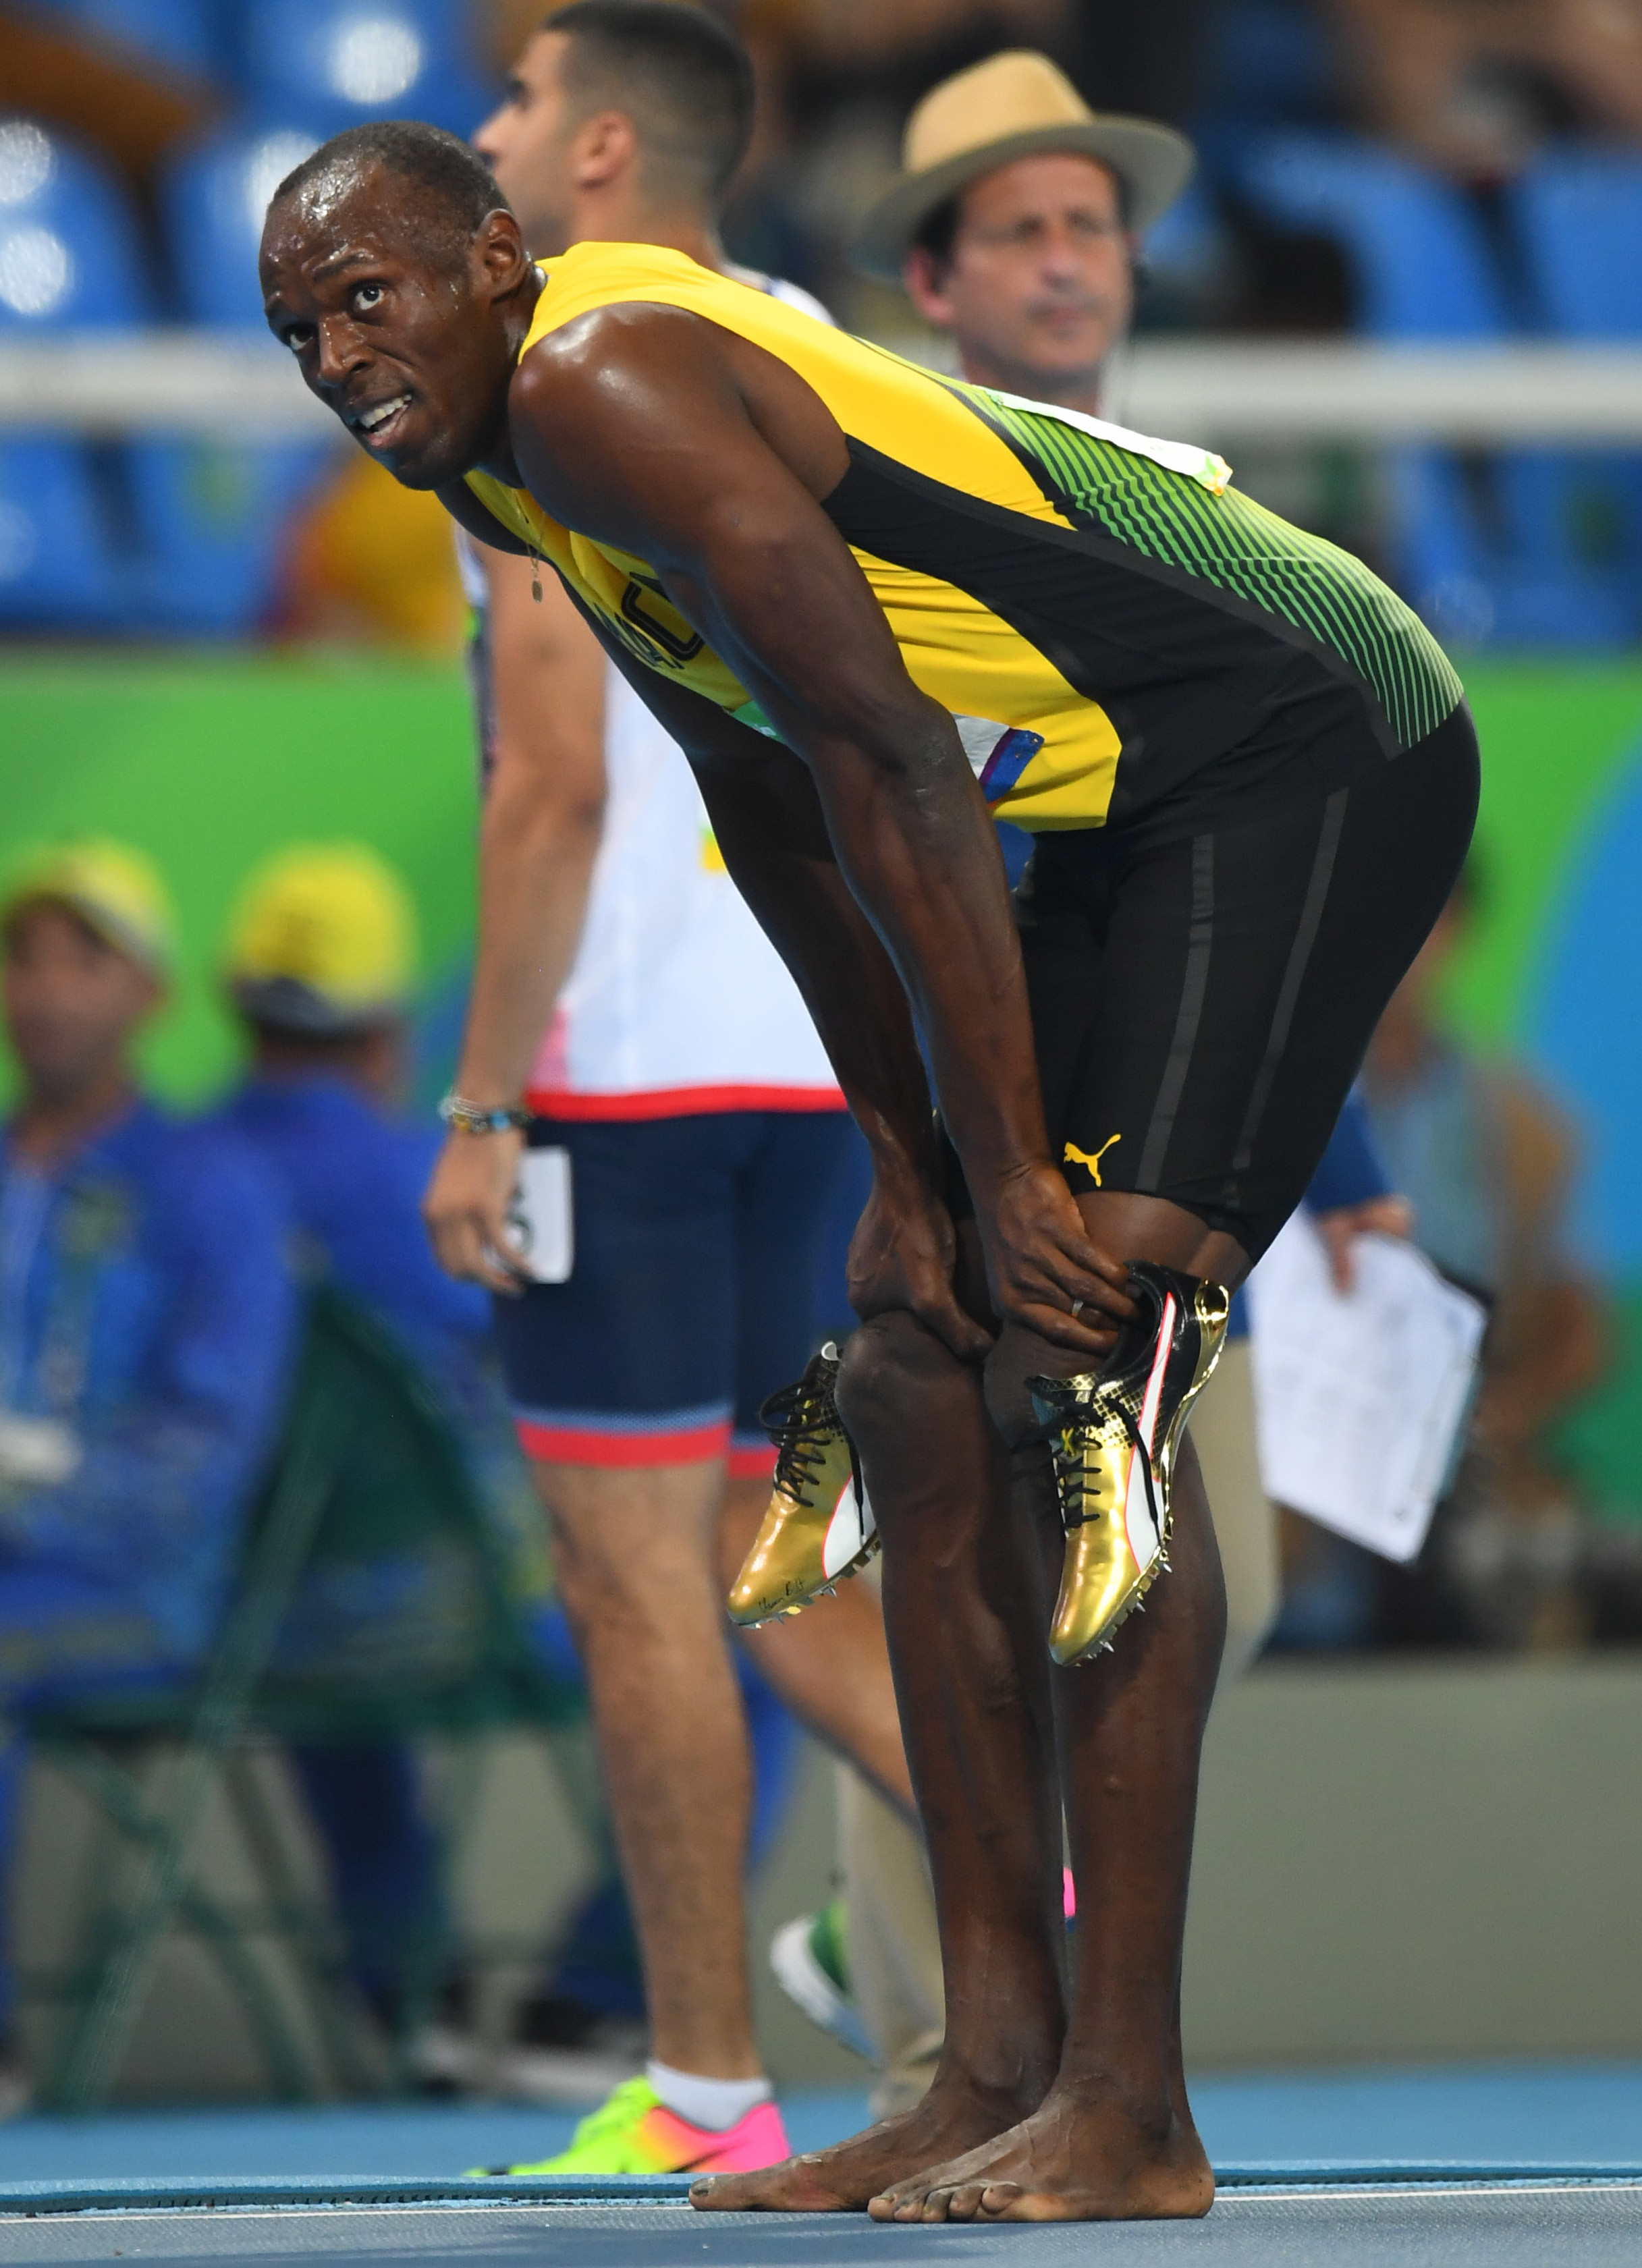 Usain Bolt's Gold Puma Spikes for the